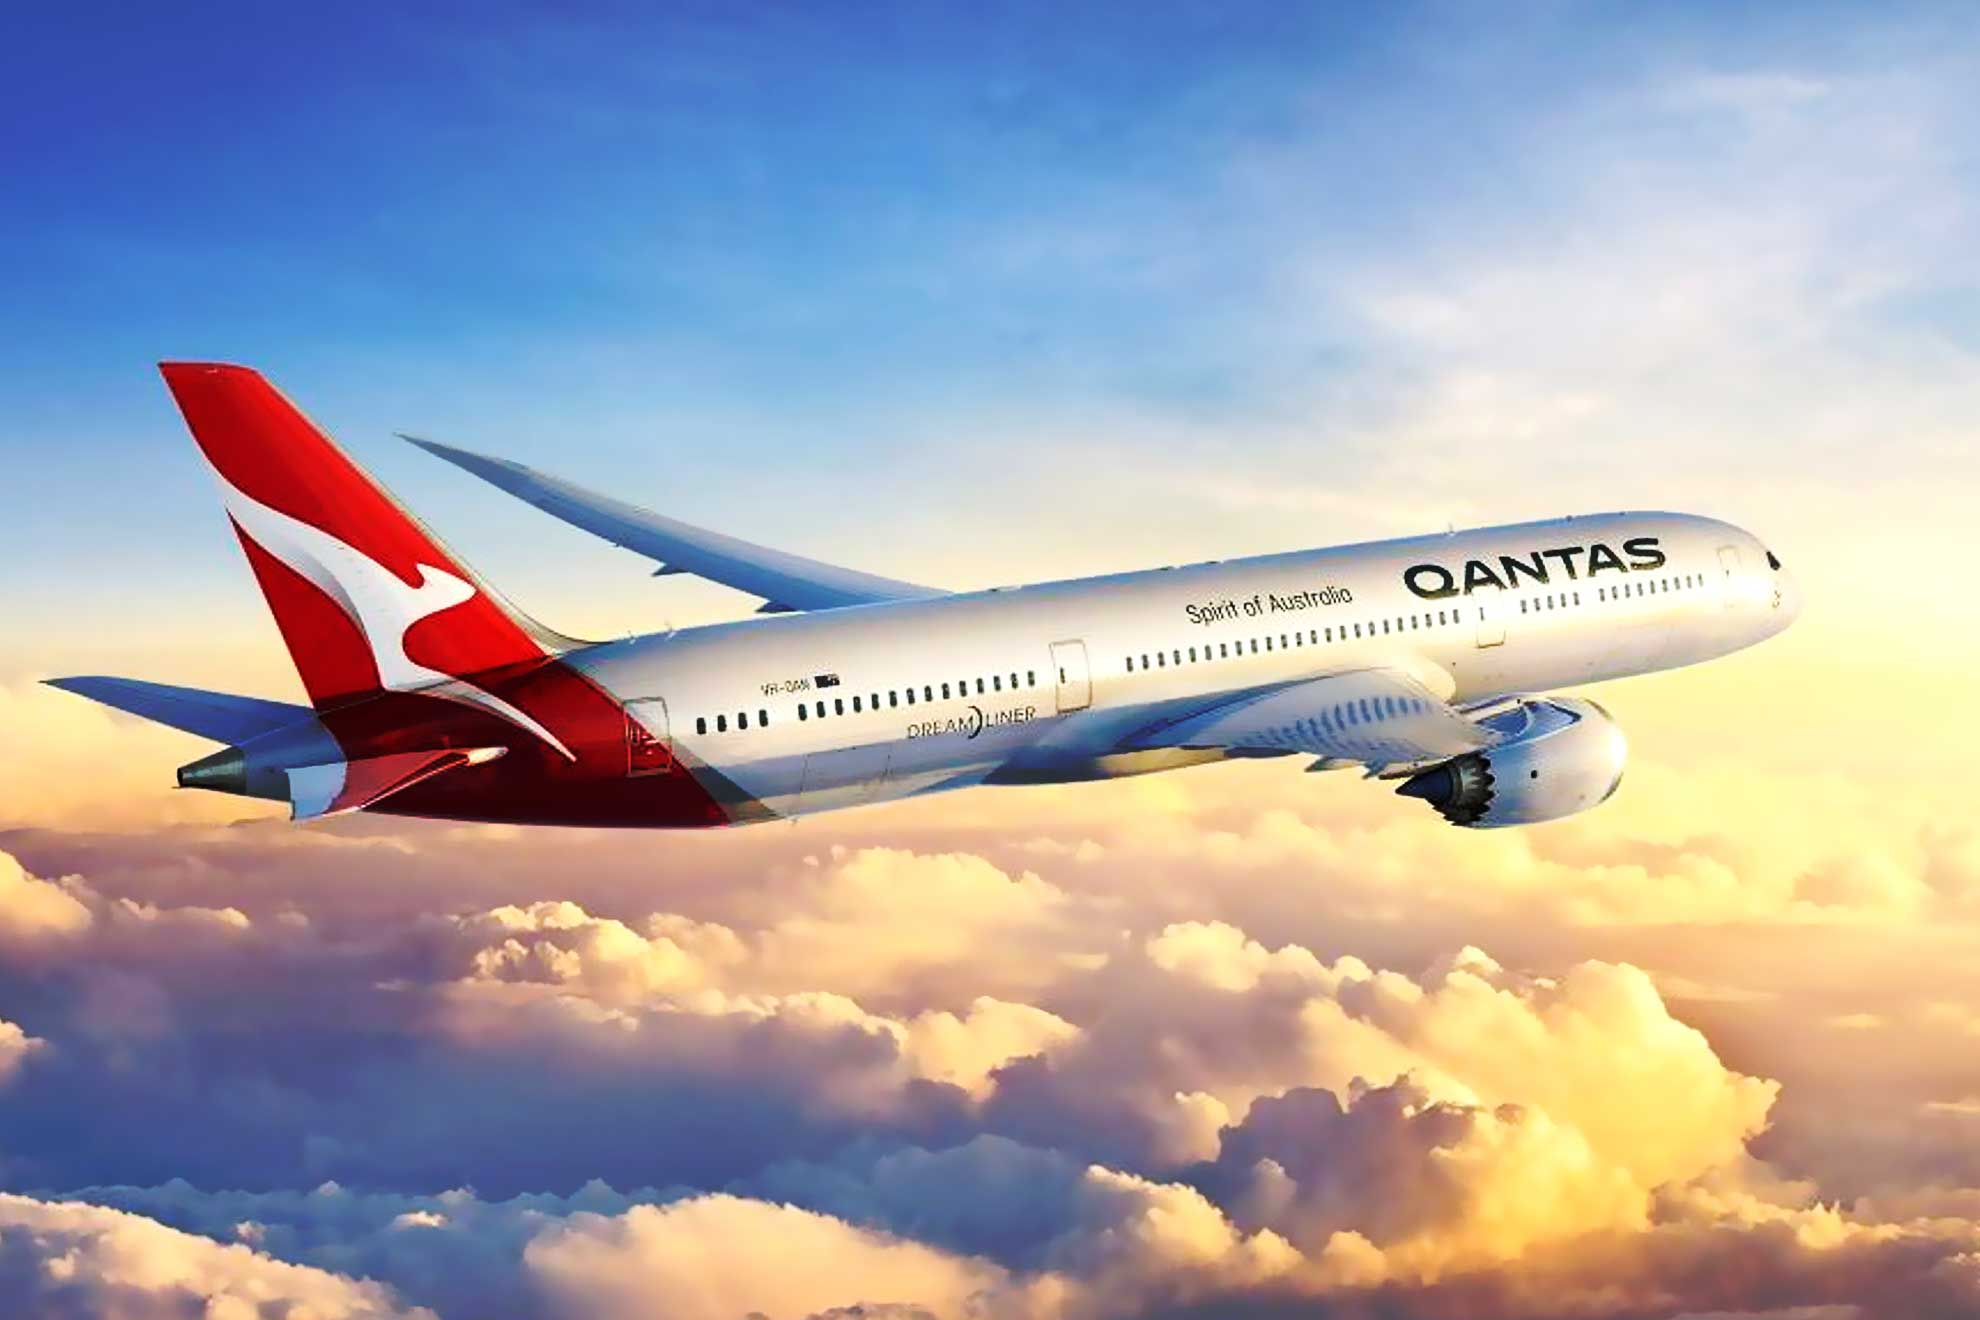 Project Sunrise launched by Qantas: the Ultra-Long Haul...